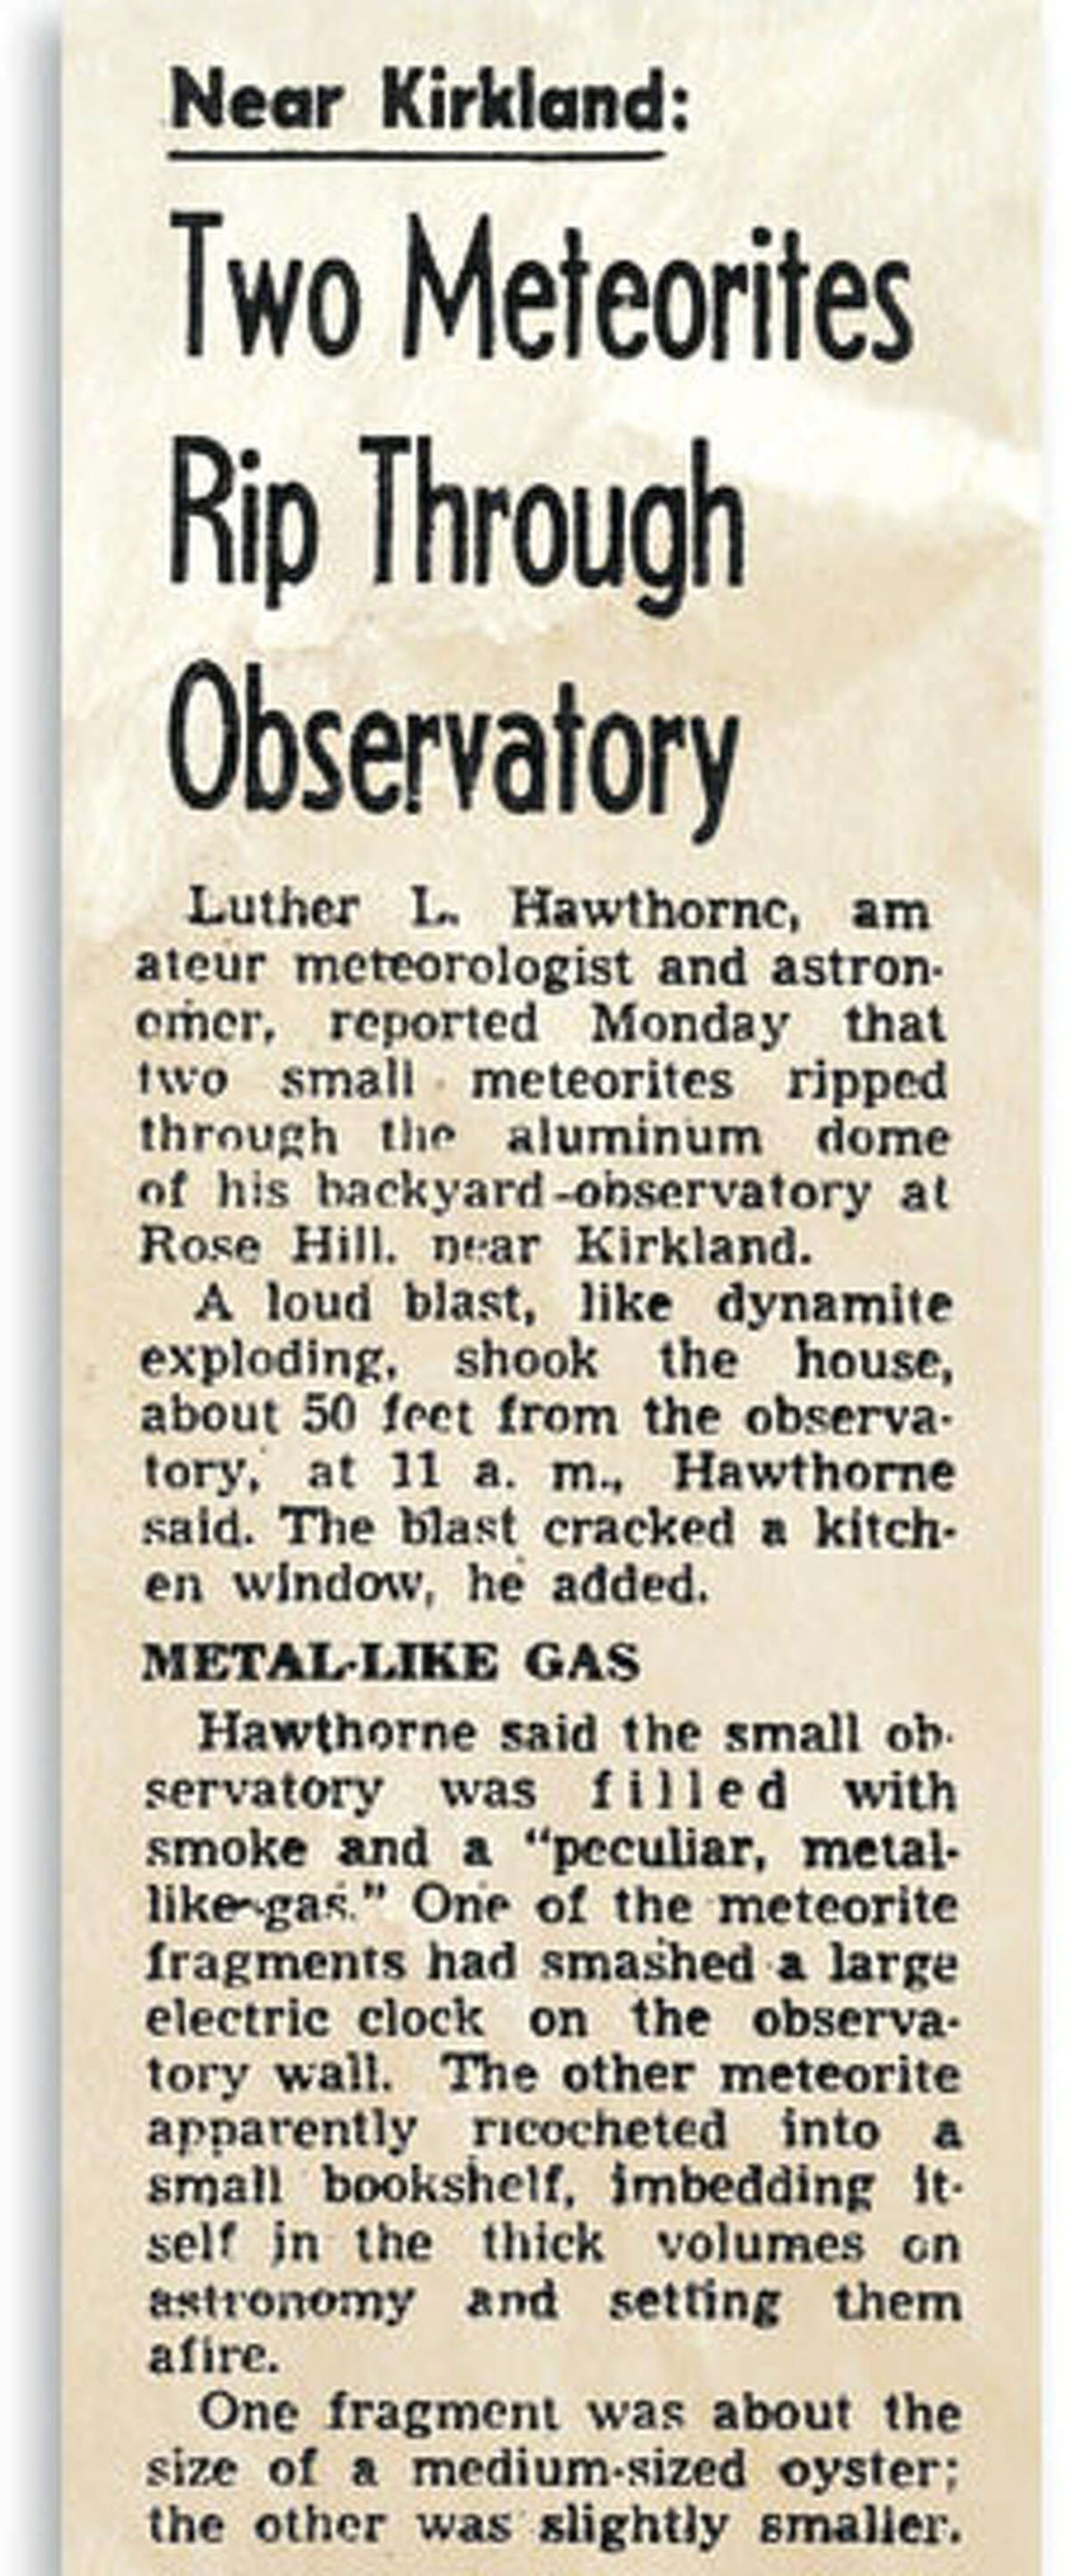 The Seattle P-I's Jan. 18, 1955, edition reported Luther Hawthorne's story about two meteorites that crashed through his backyard observatory.